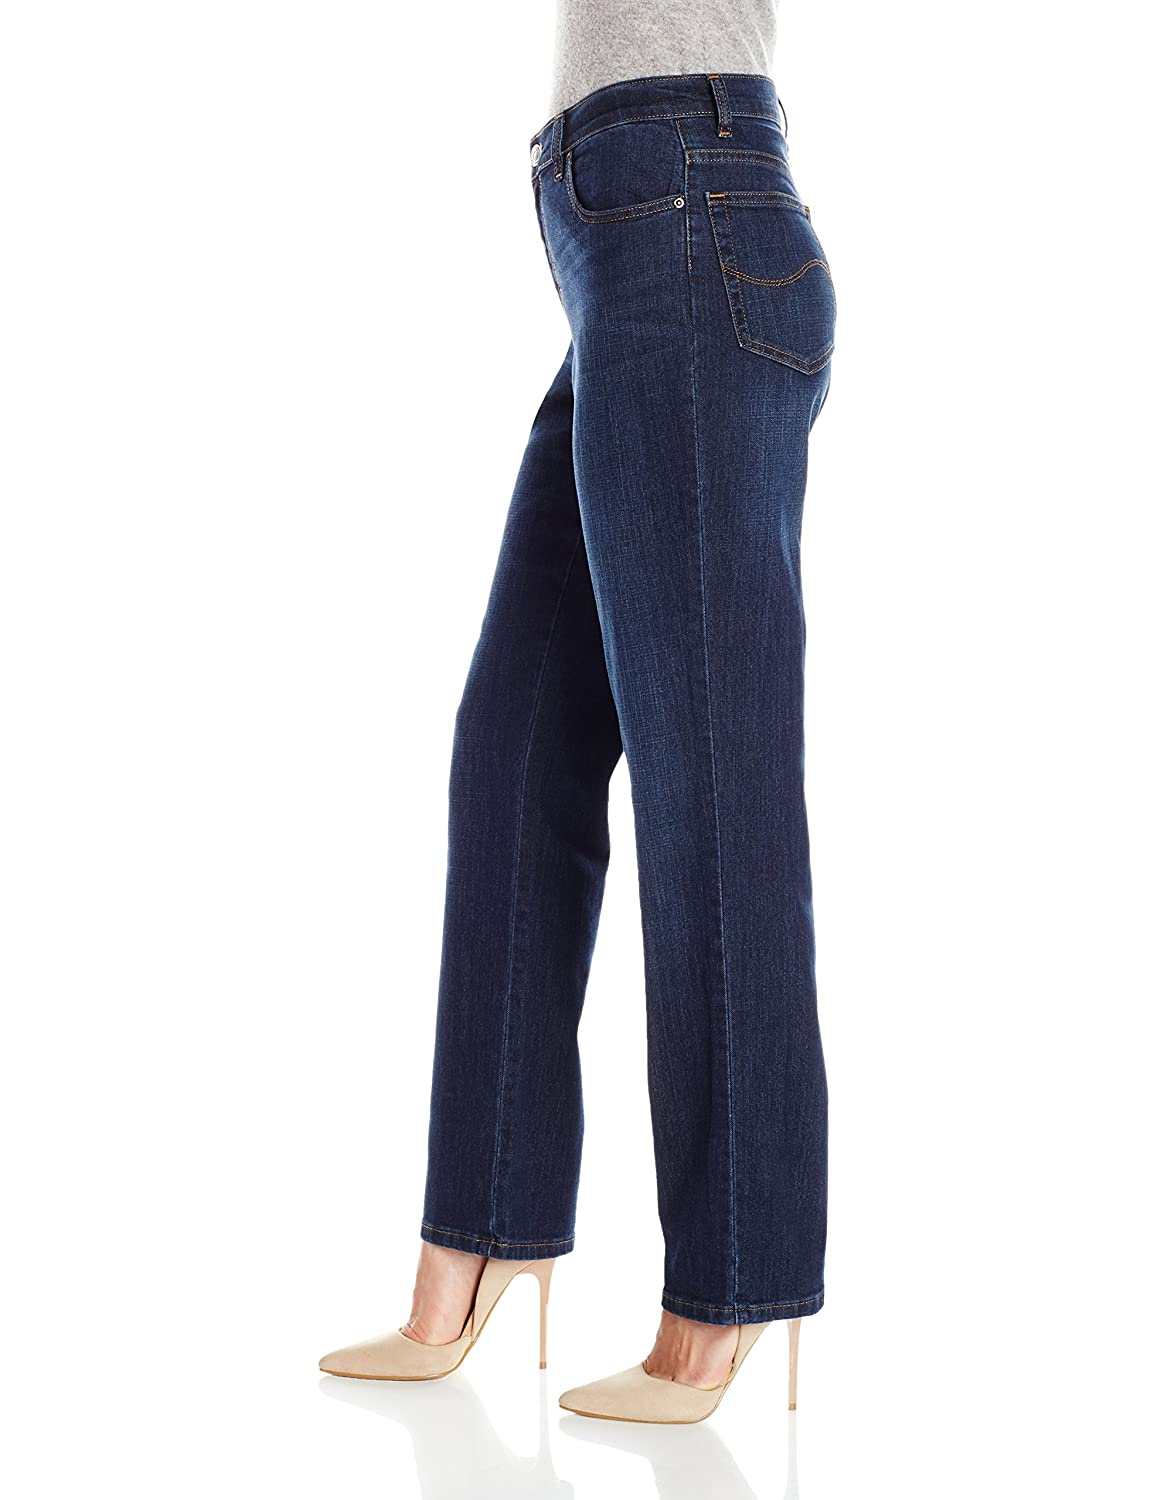 LEE Womens Relaxed Fit Straight Leg Jean, Verona, 16 Long ...